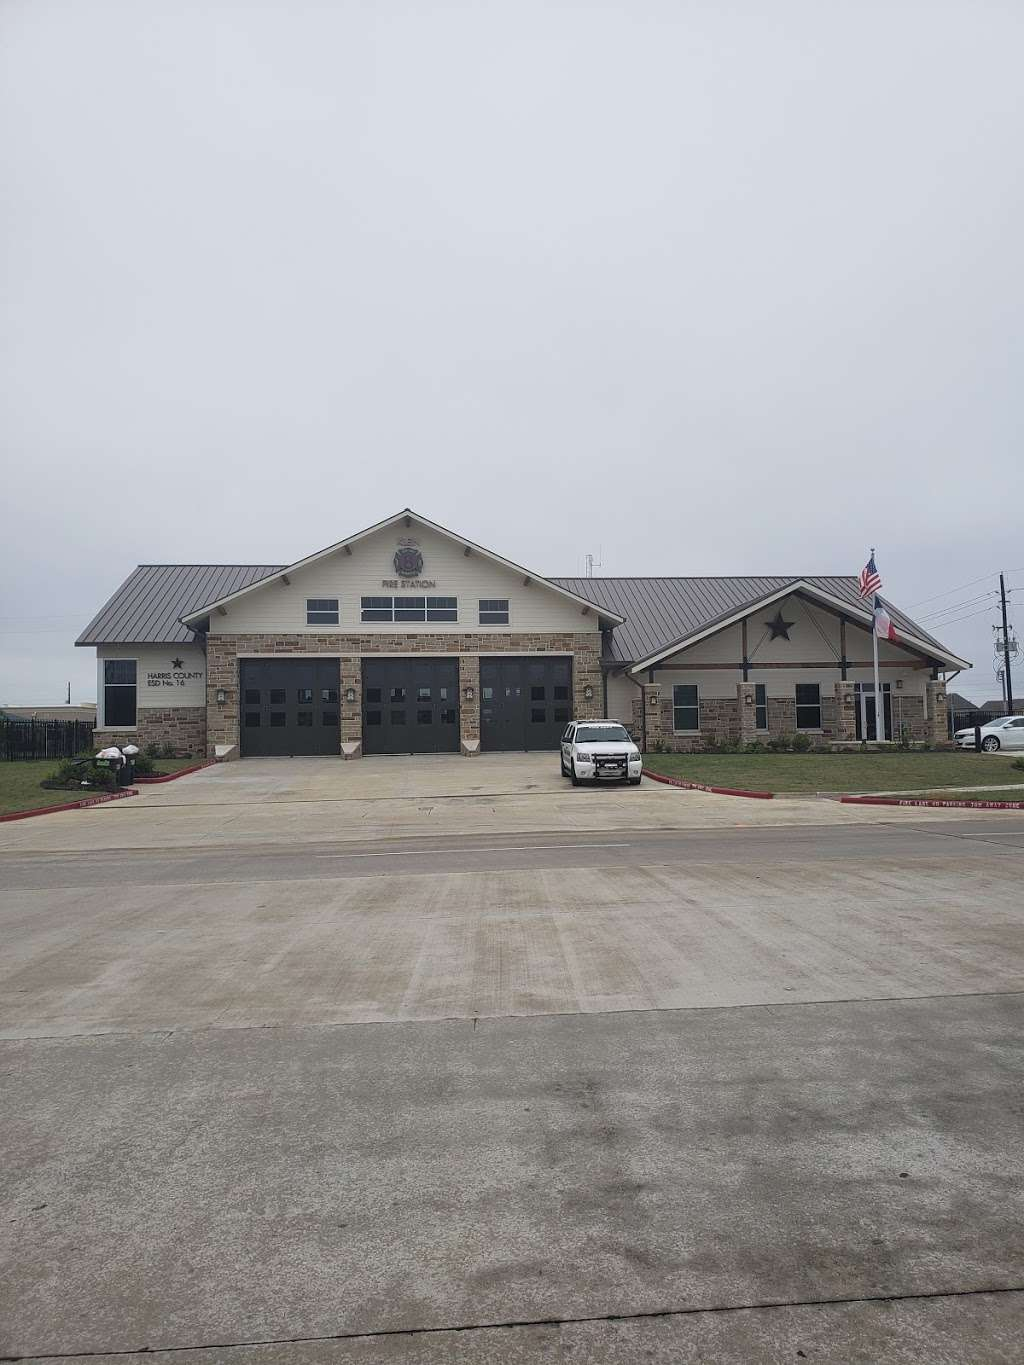 KLEIN FIRE DEPARTMENT STATION 8 - fire station  | Photo 2 of 2 | Address: 6900 Crescent Clover Dr, Spring, TX 77379, USA